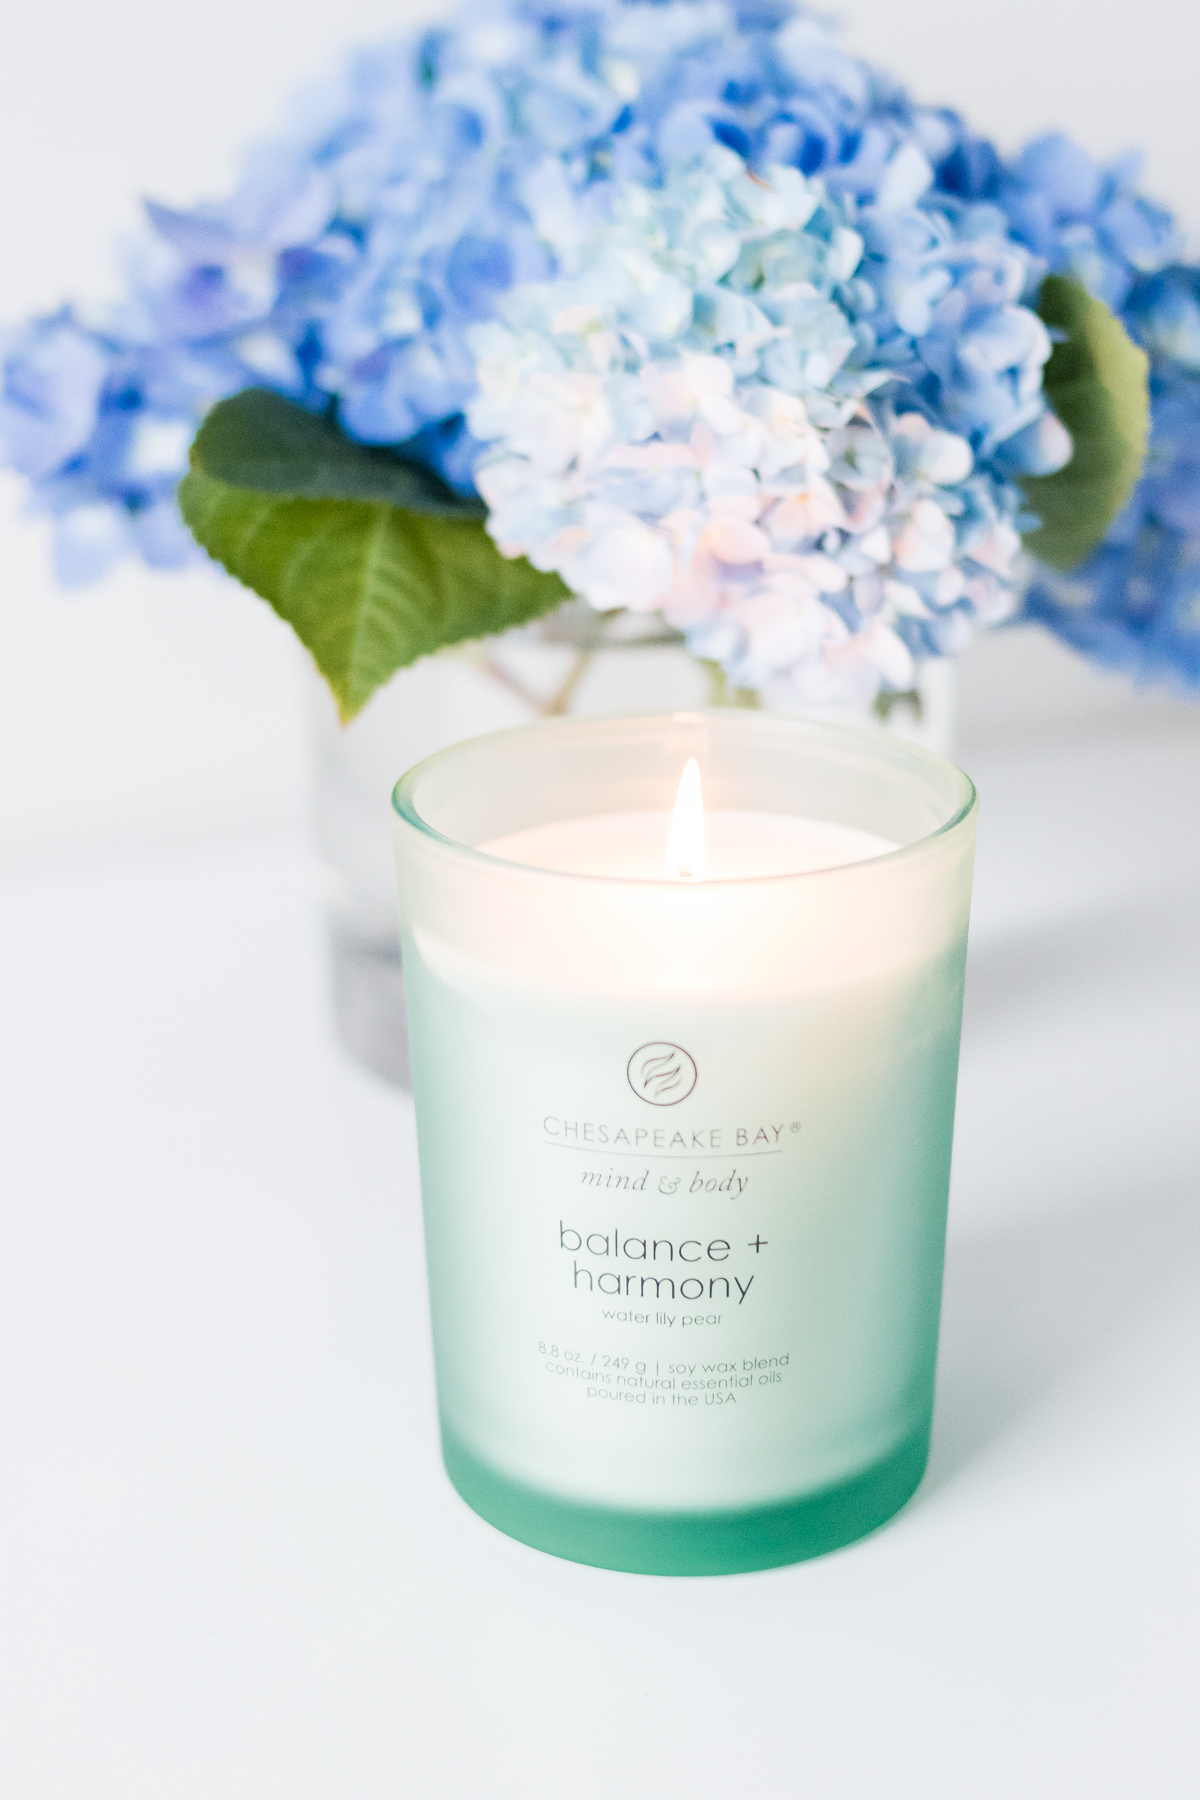 Chesapeake Bay Candle Balance & Harmony